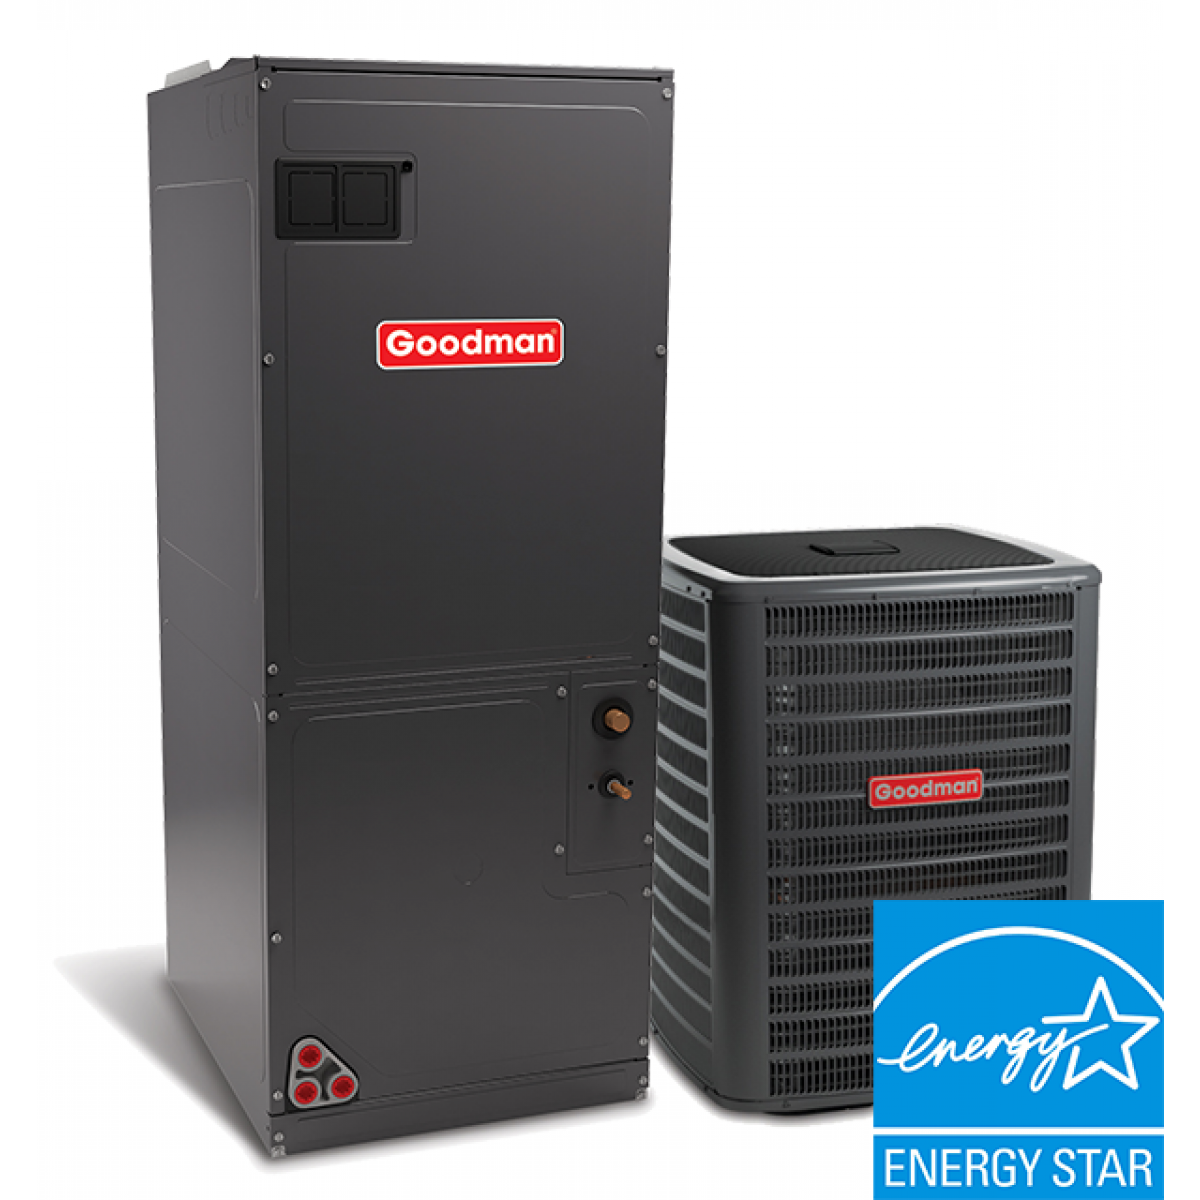 #0383C8 Goodman 2.0 Ton 16 SEER Two Stage Cooling Only Split  Most Effective 175 5 Ton Heating And Cooling Units pictures with 1200x1200 px on helpvideos.info - Air Conditioners, Air Coolers and more